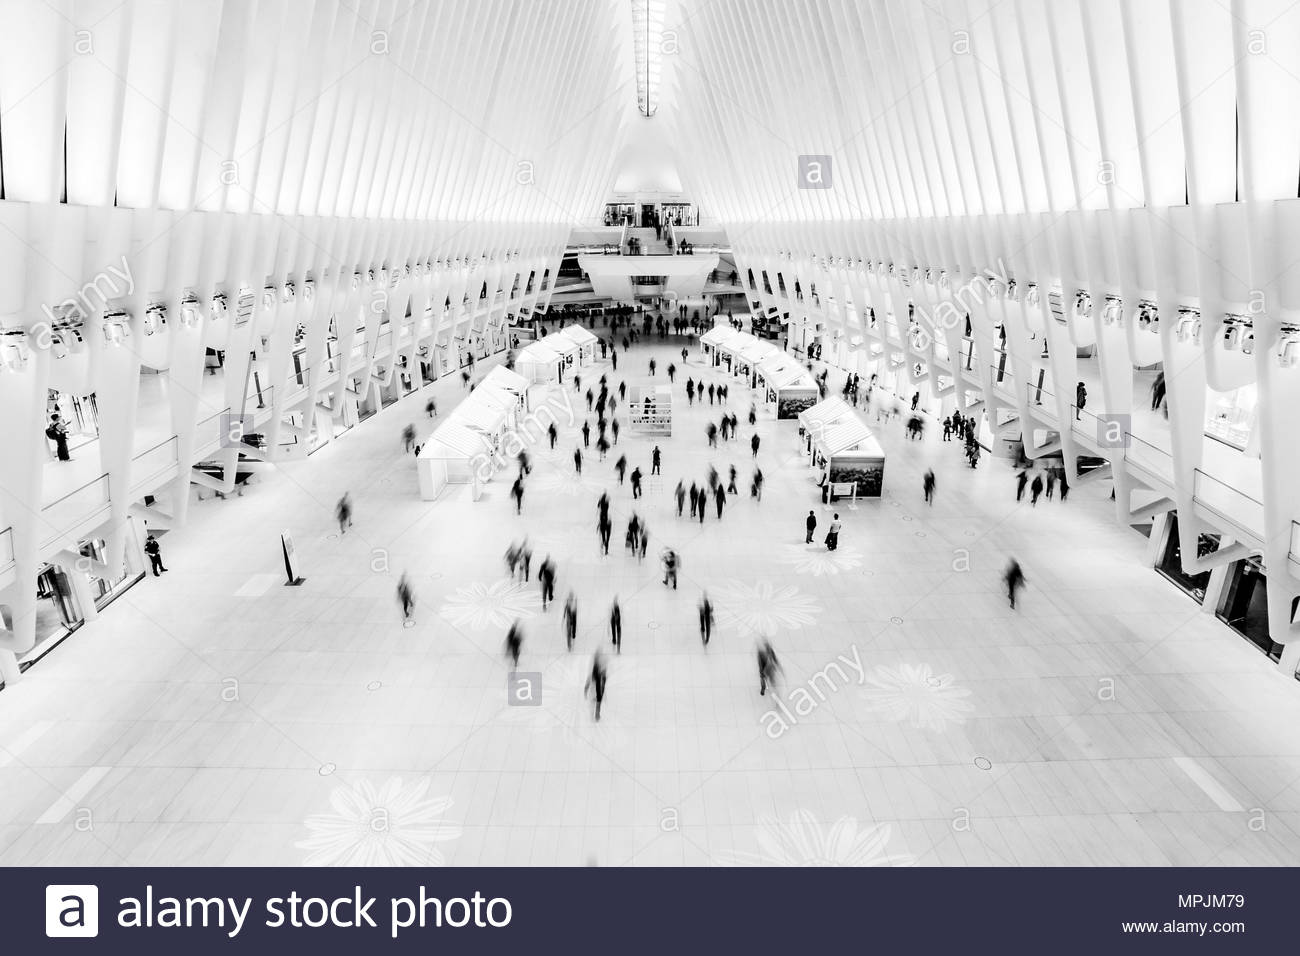 9/11 Memorial Station NYC - Stock Image